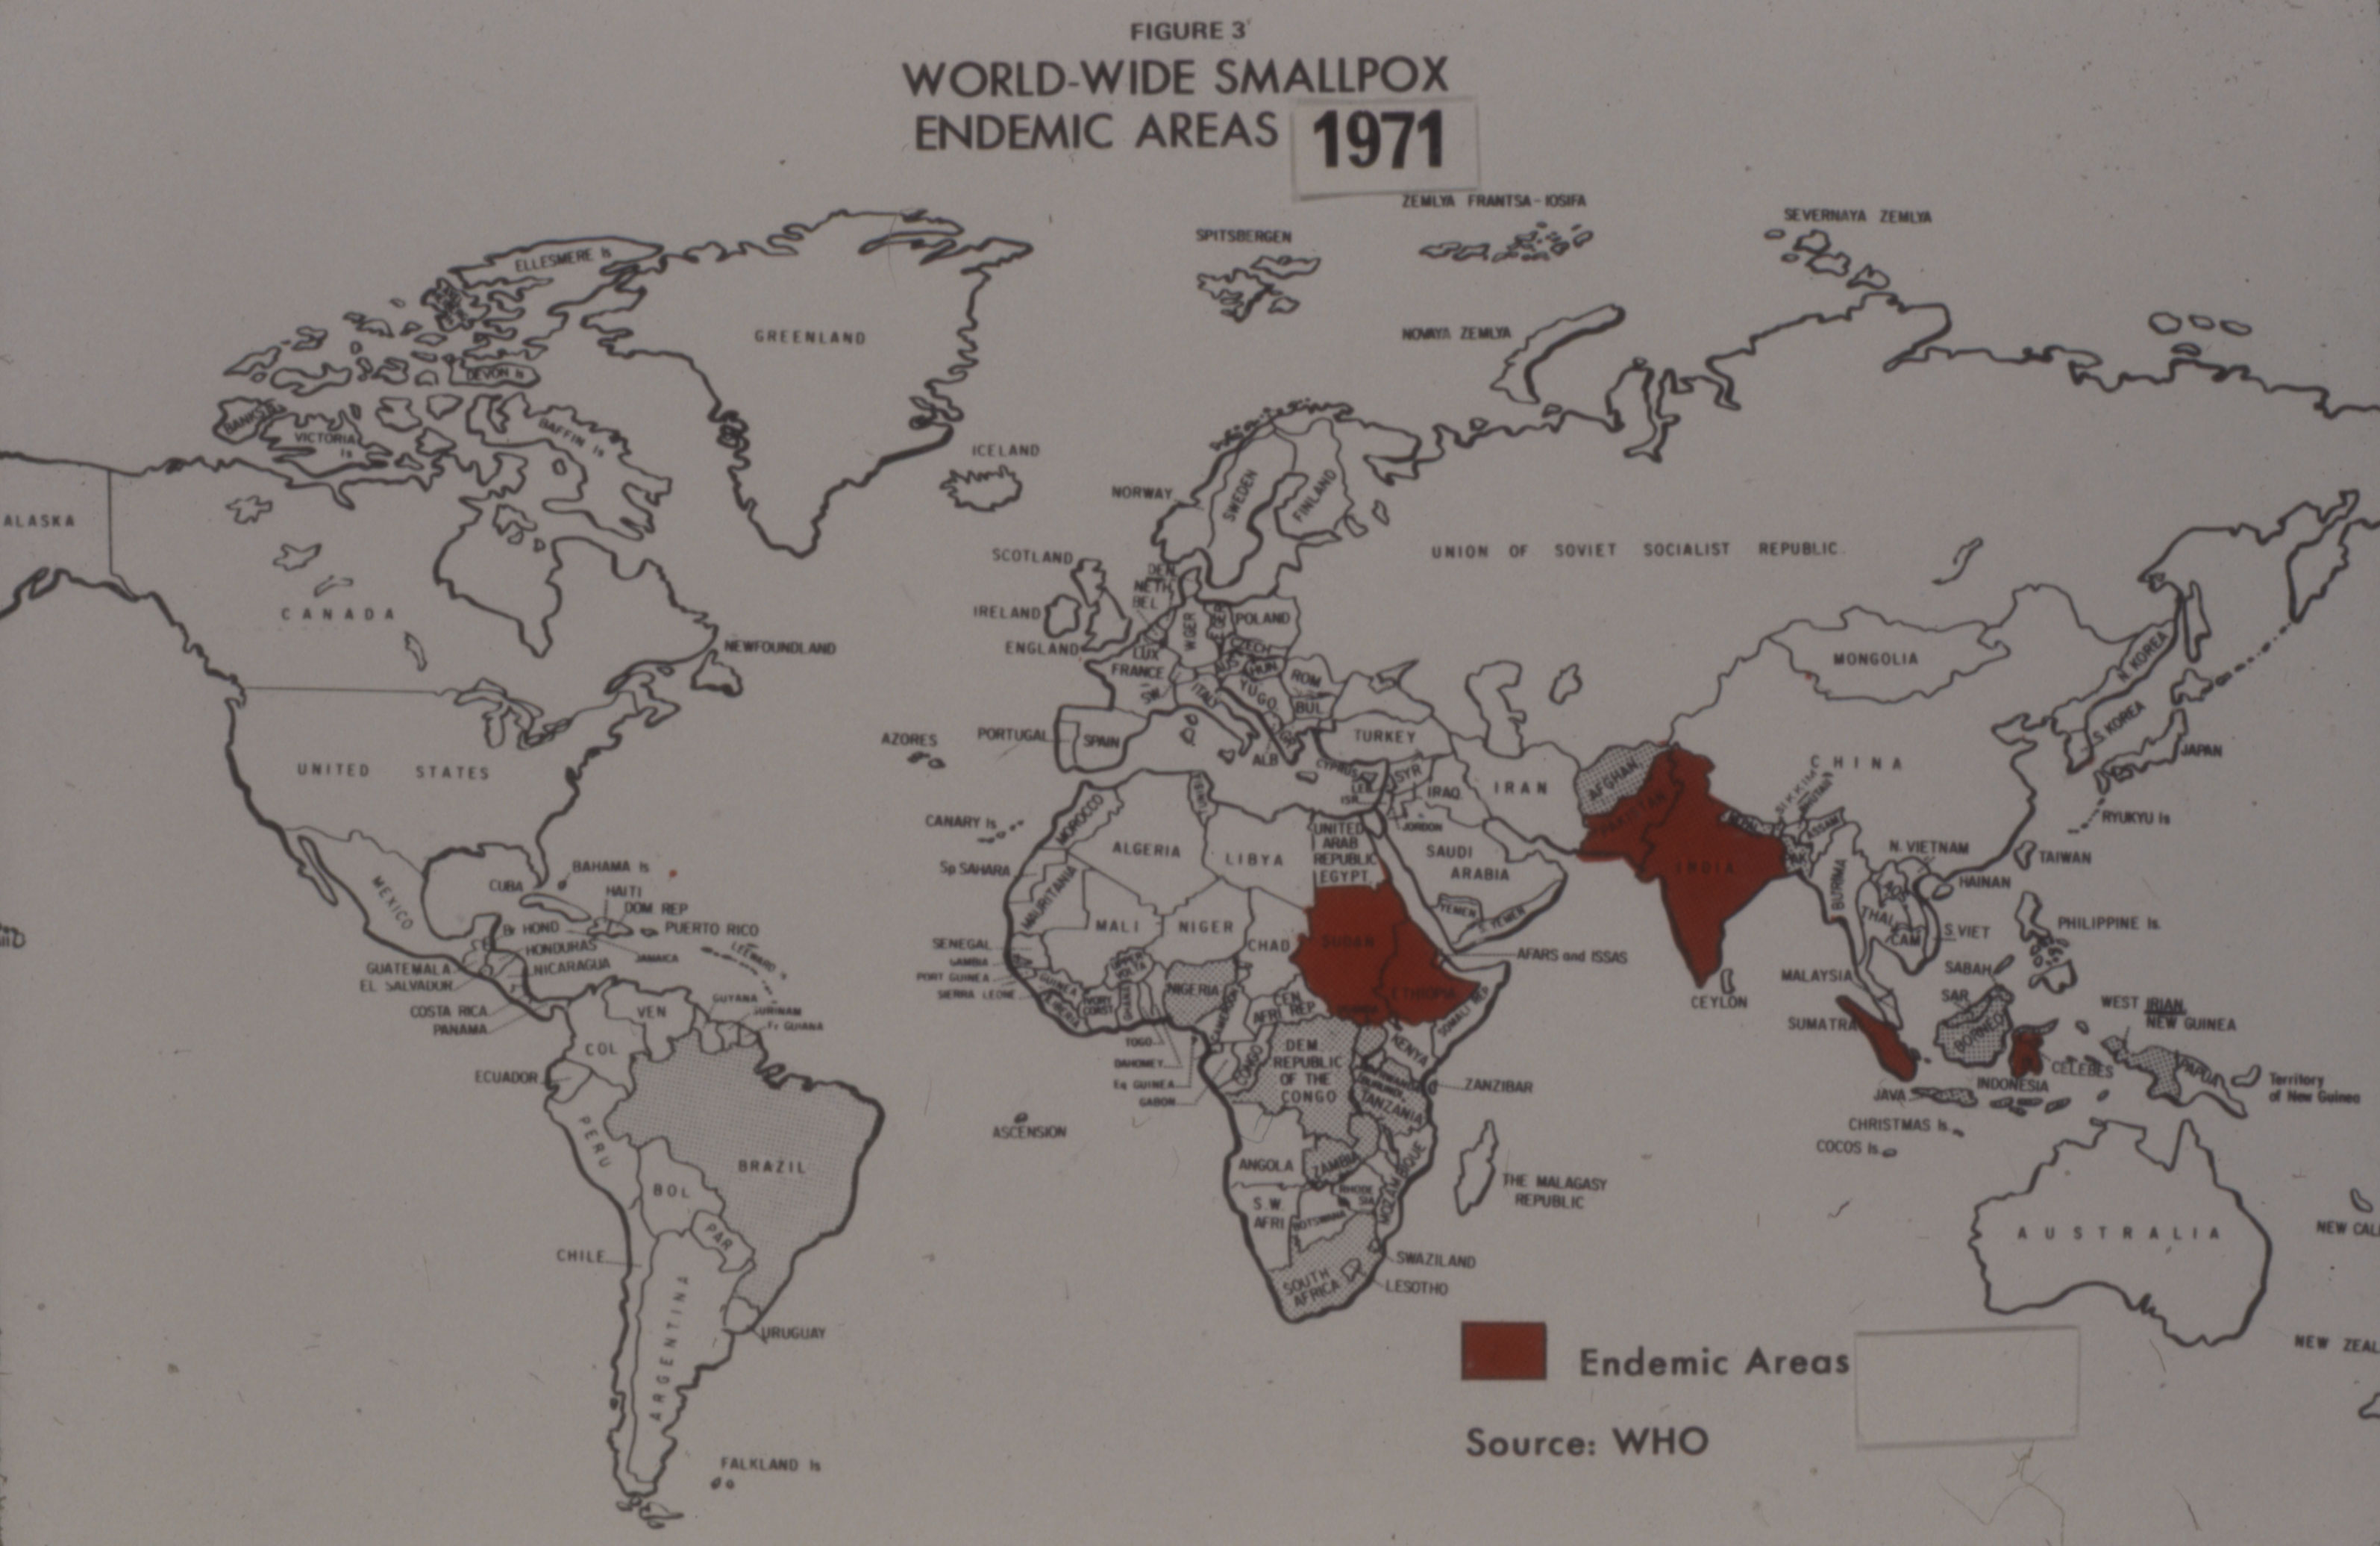 World map showing areas where smallpox was endemic in 1971.